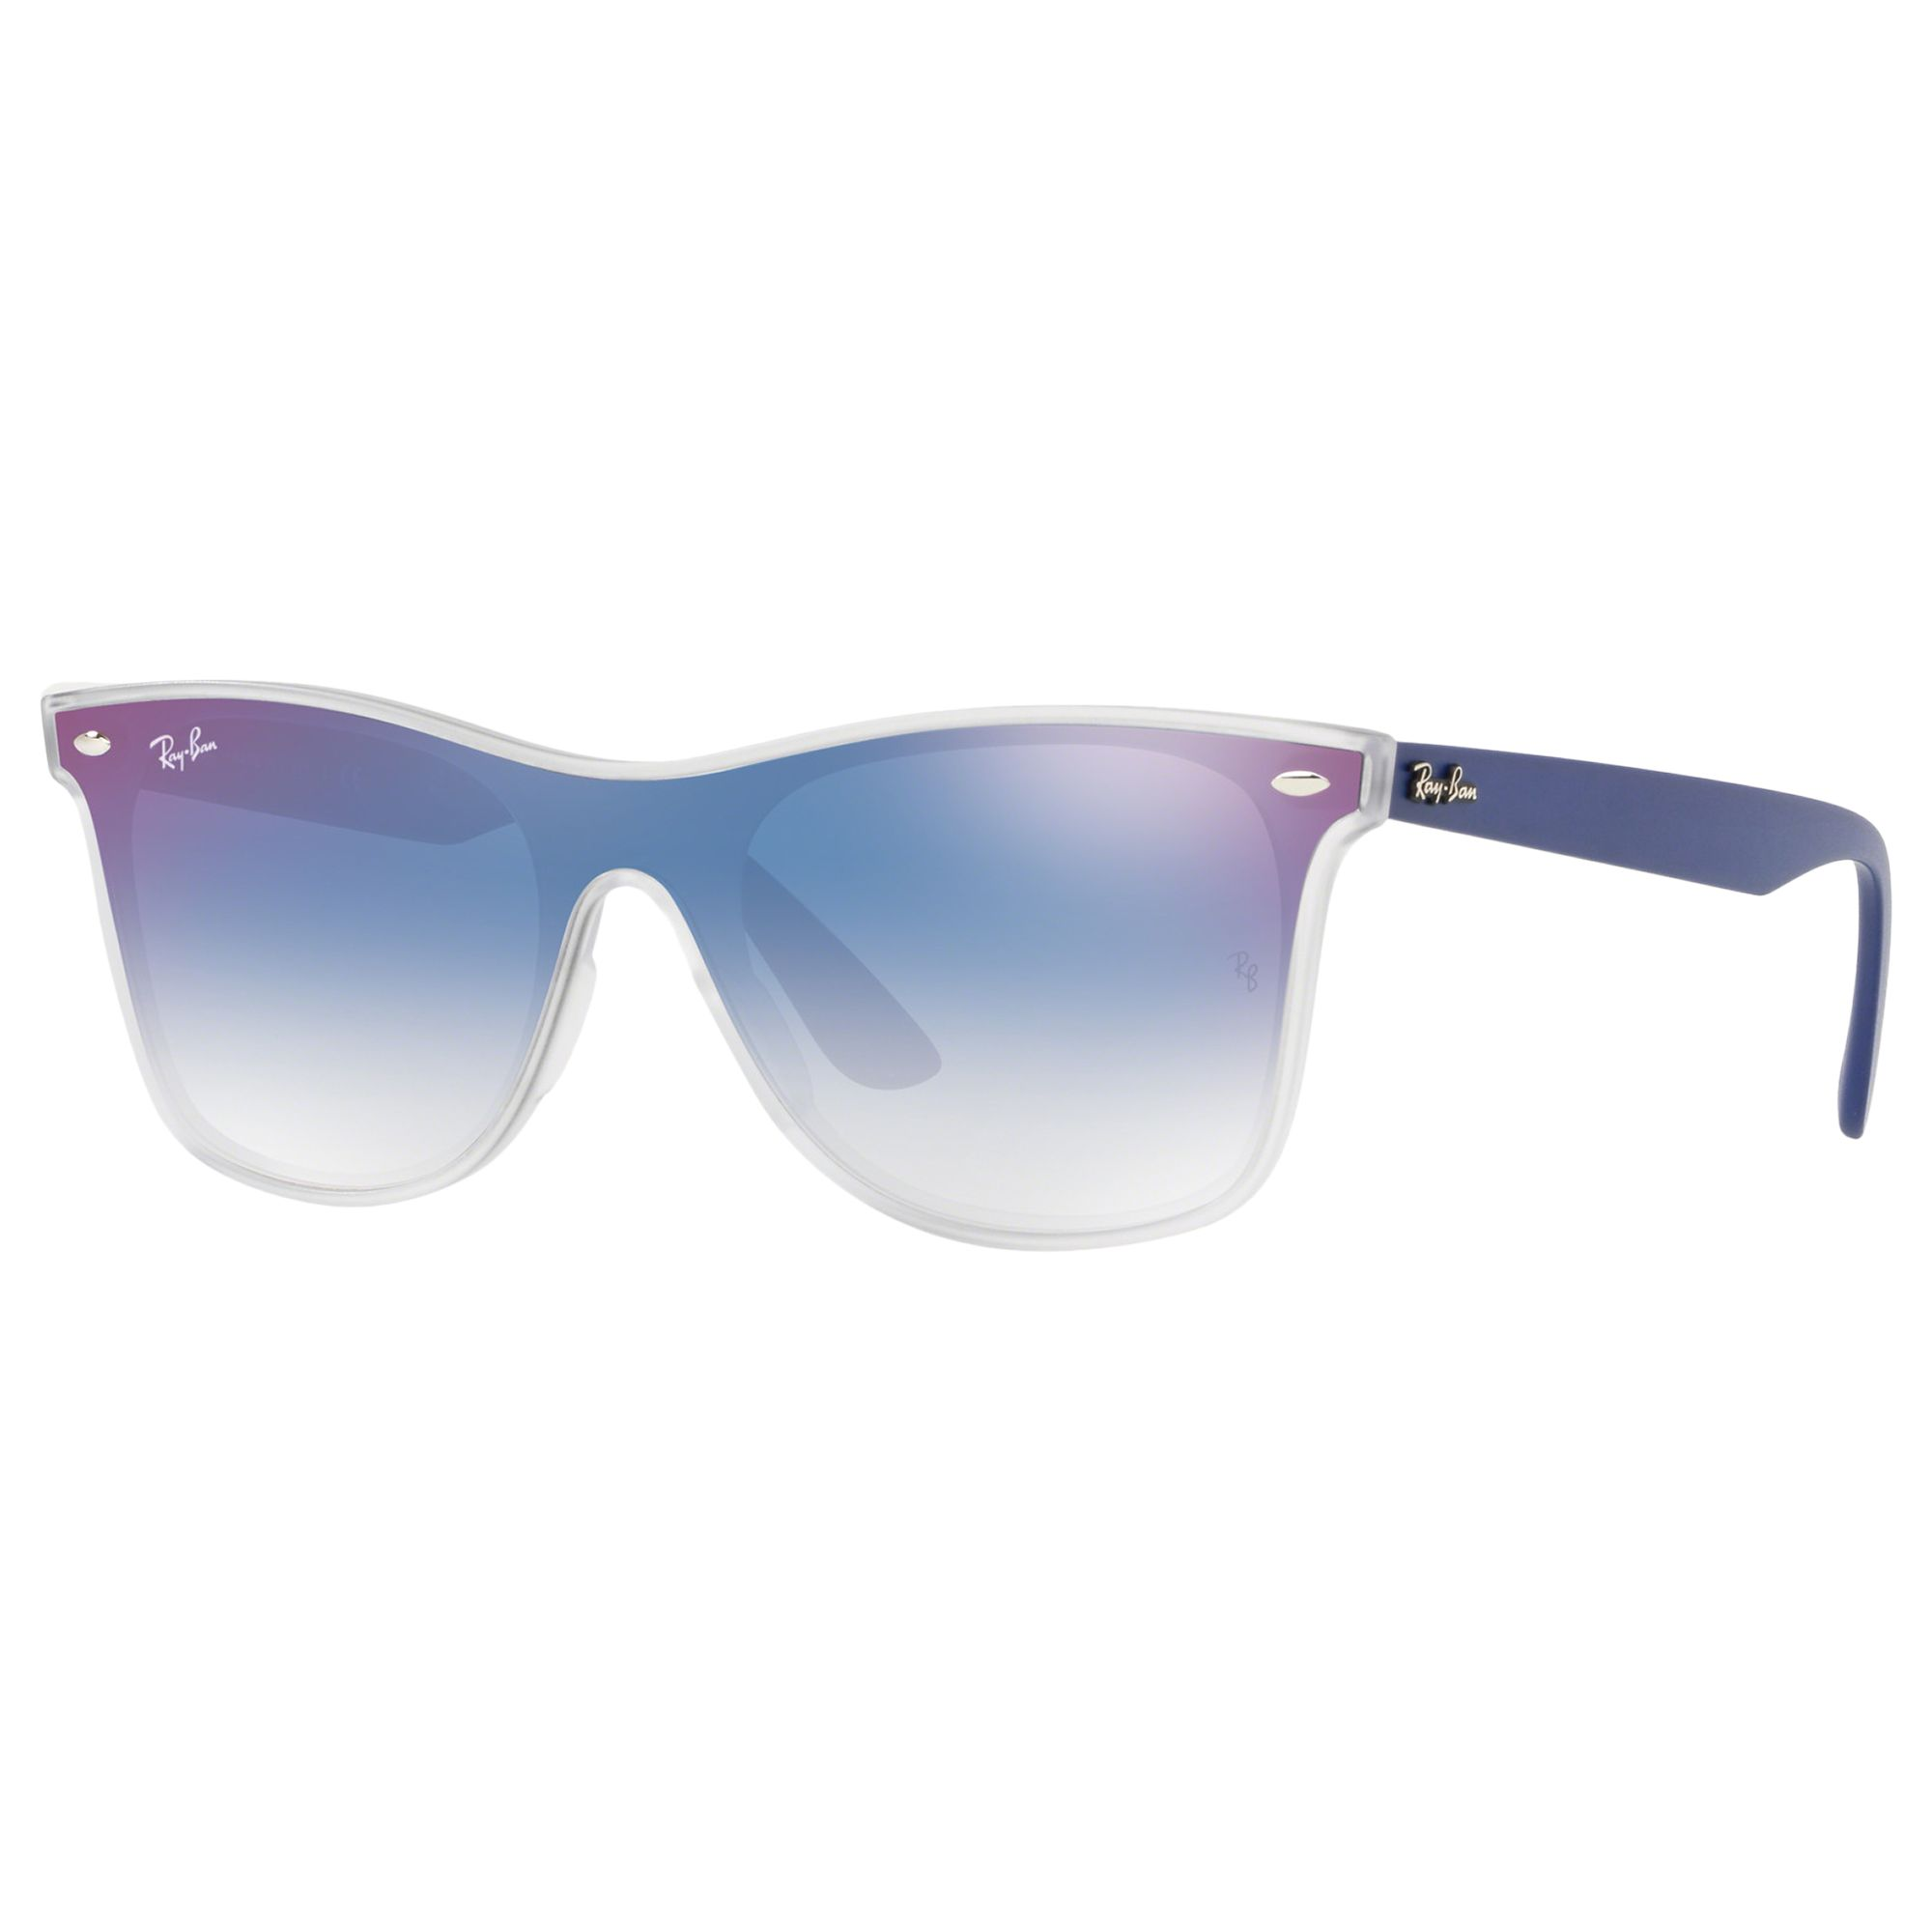 Ray-ban Ray-Ban RB4440 Unisex Polarised Mirrored Sunglasses, Blue